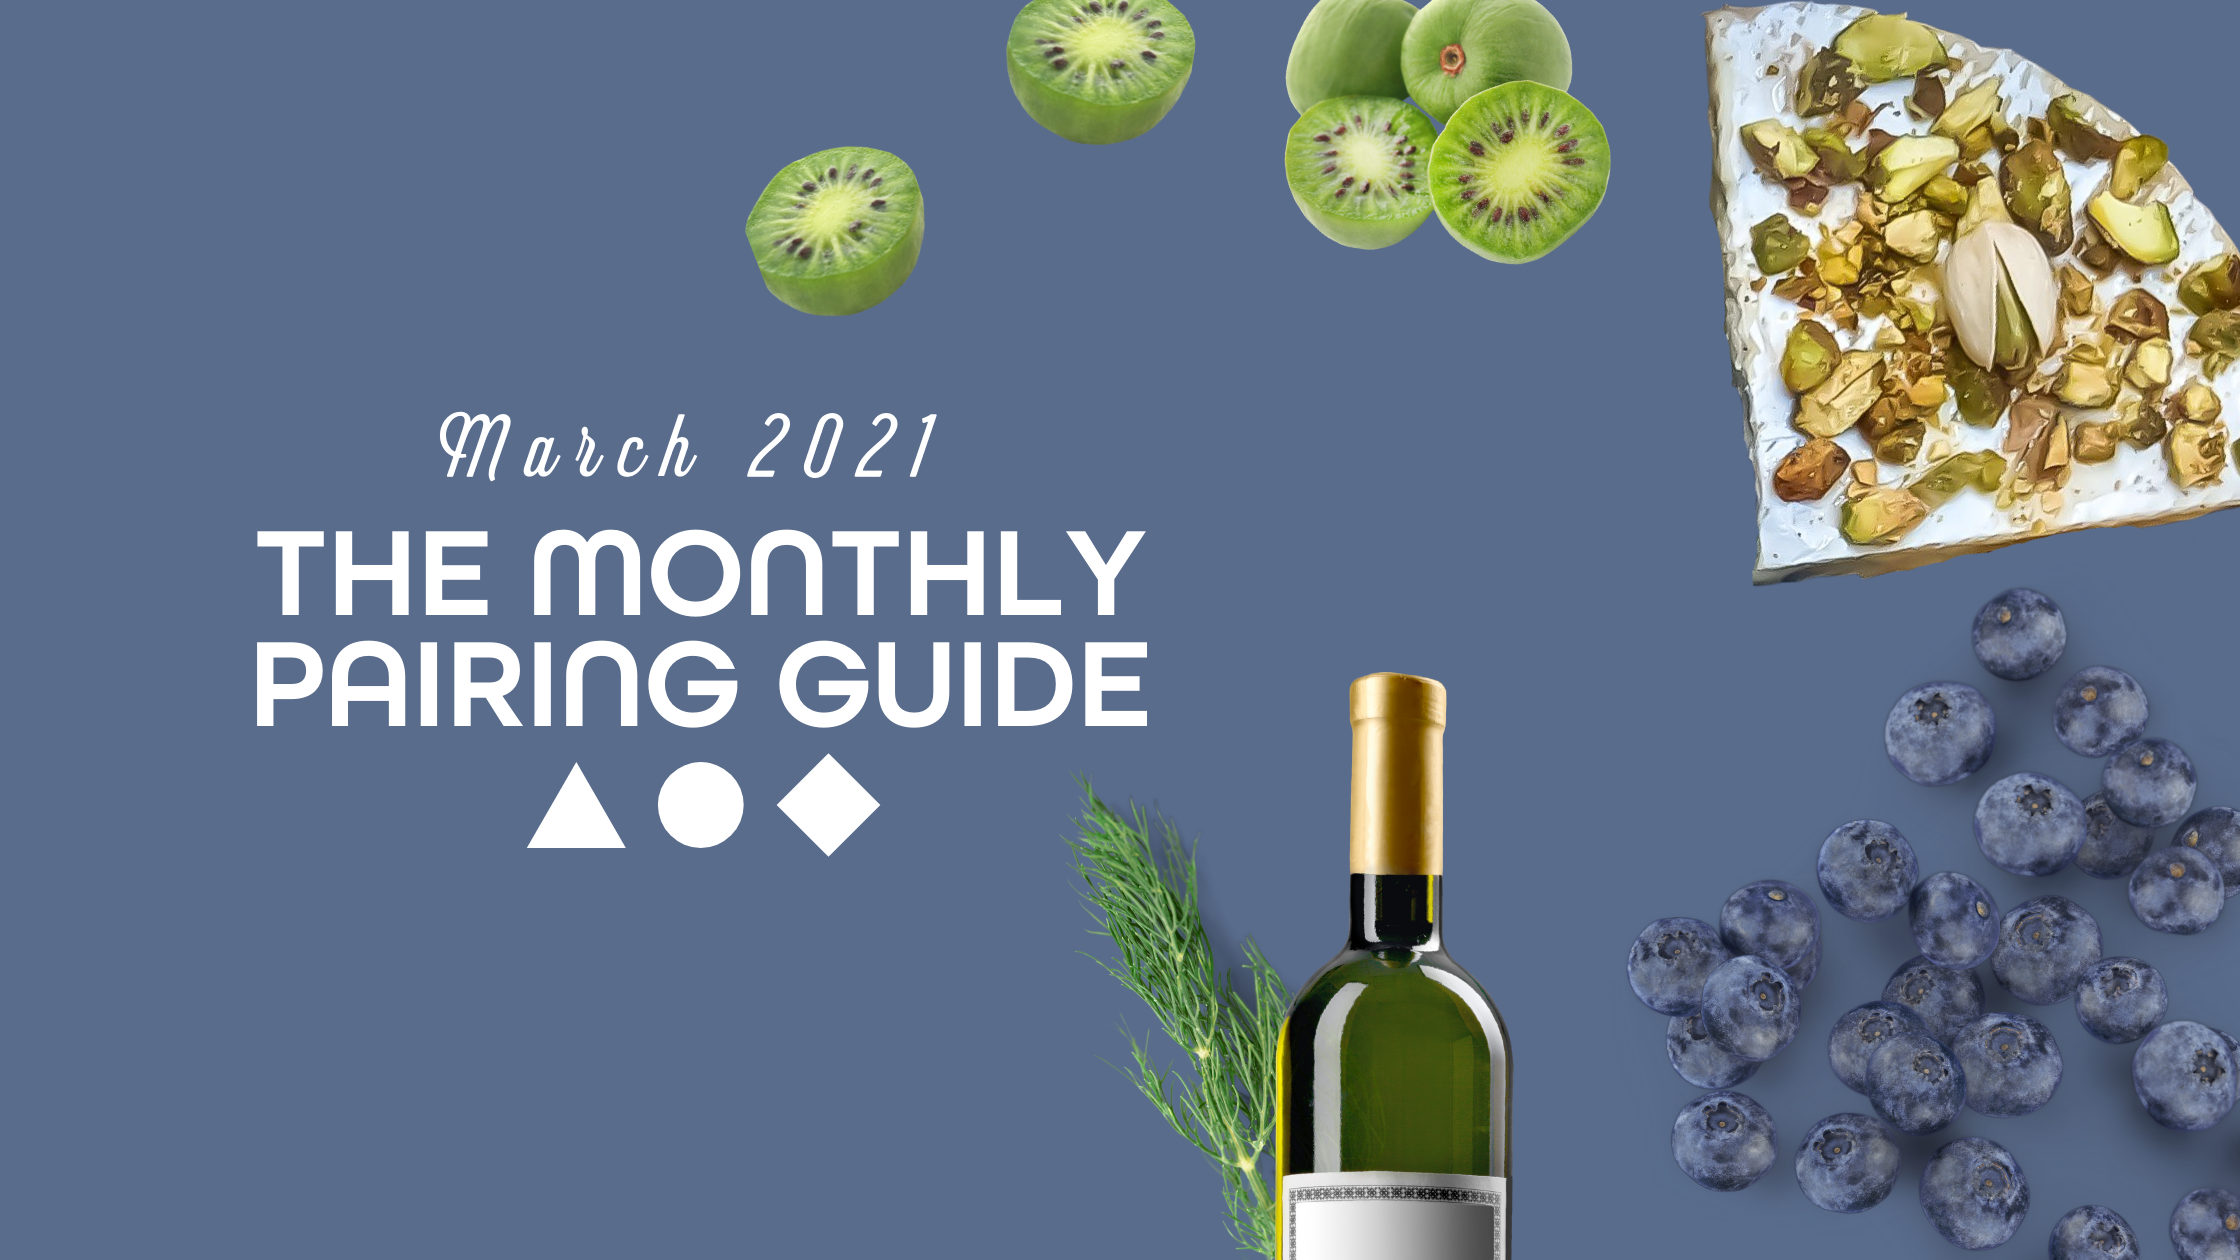 Pairing Guide Header March 2021